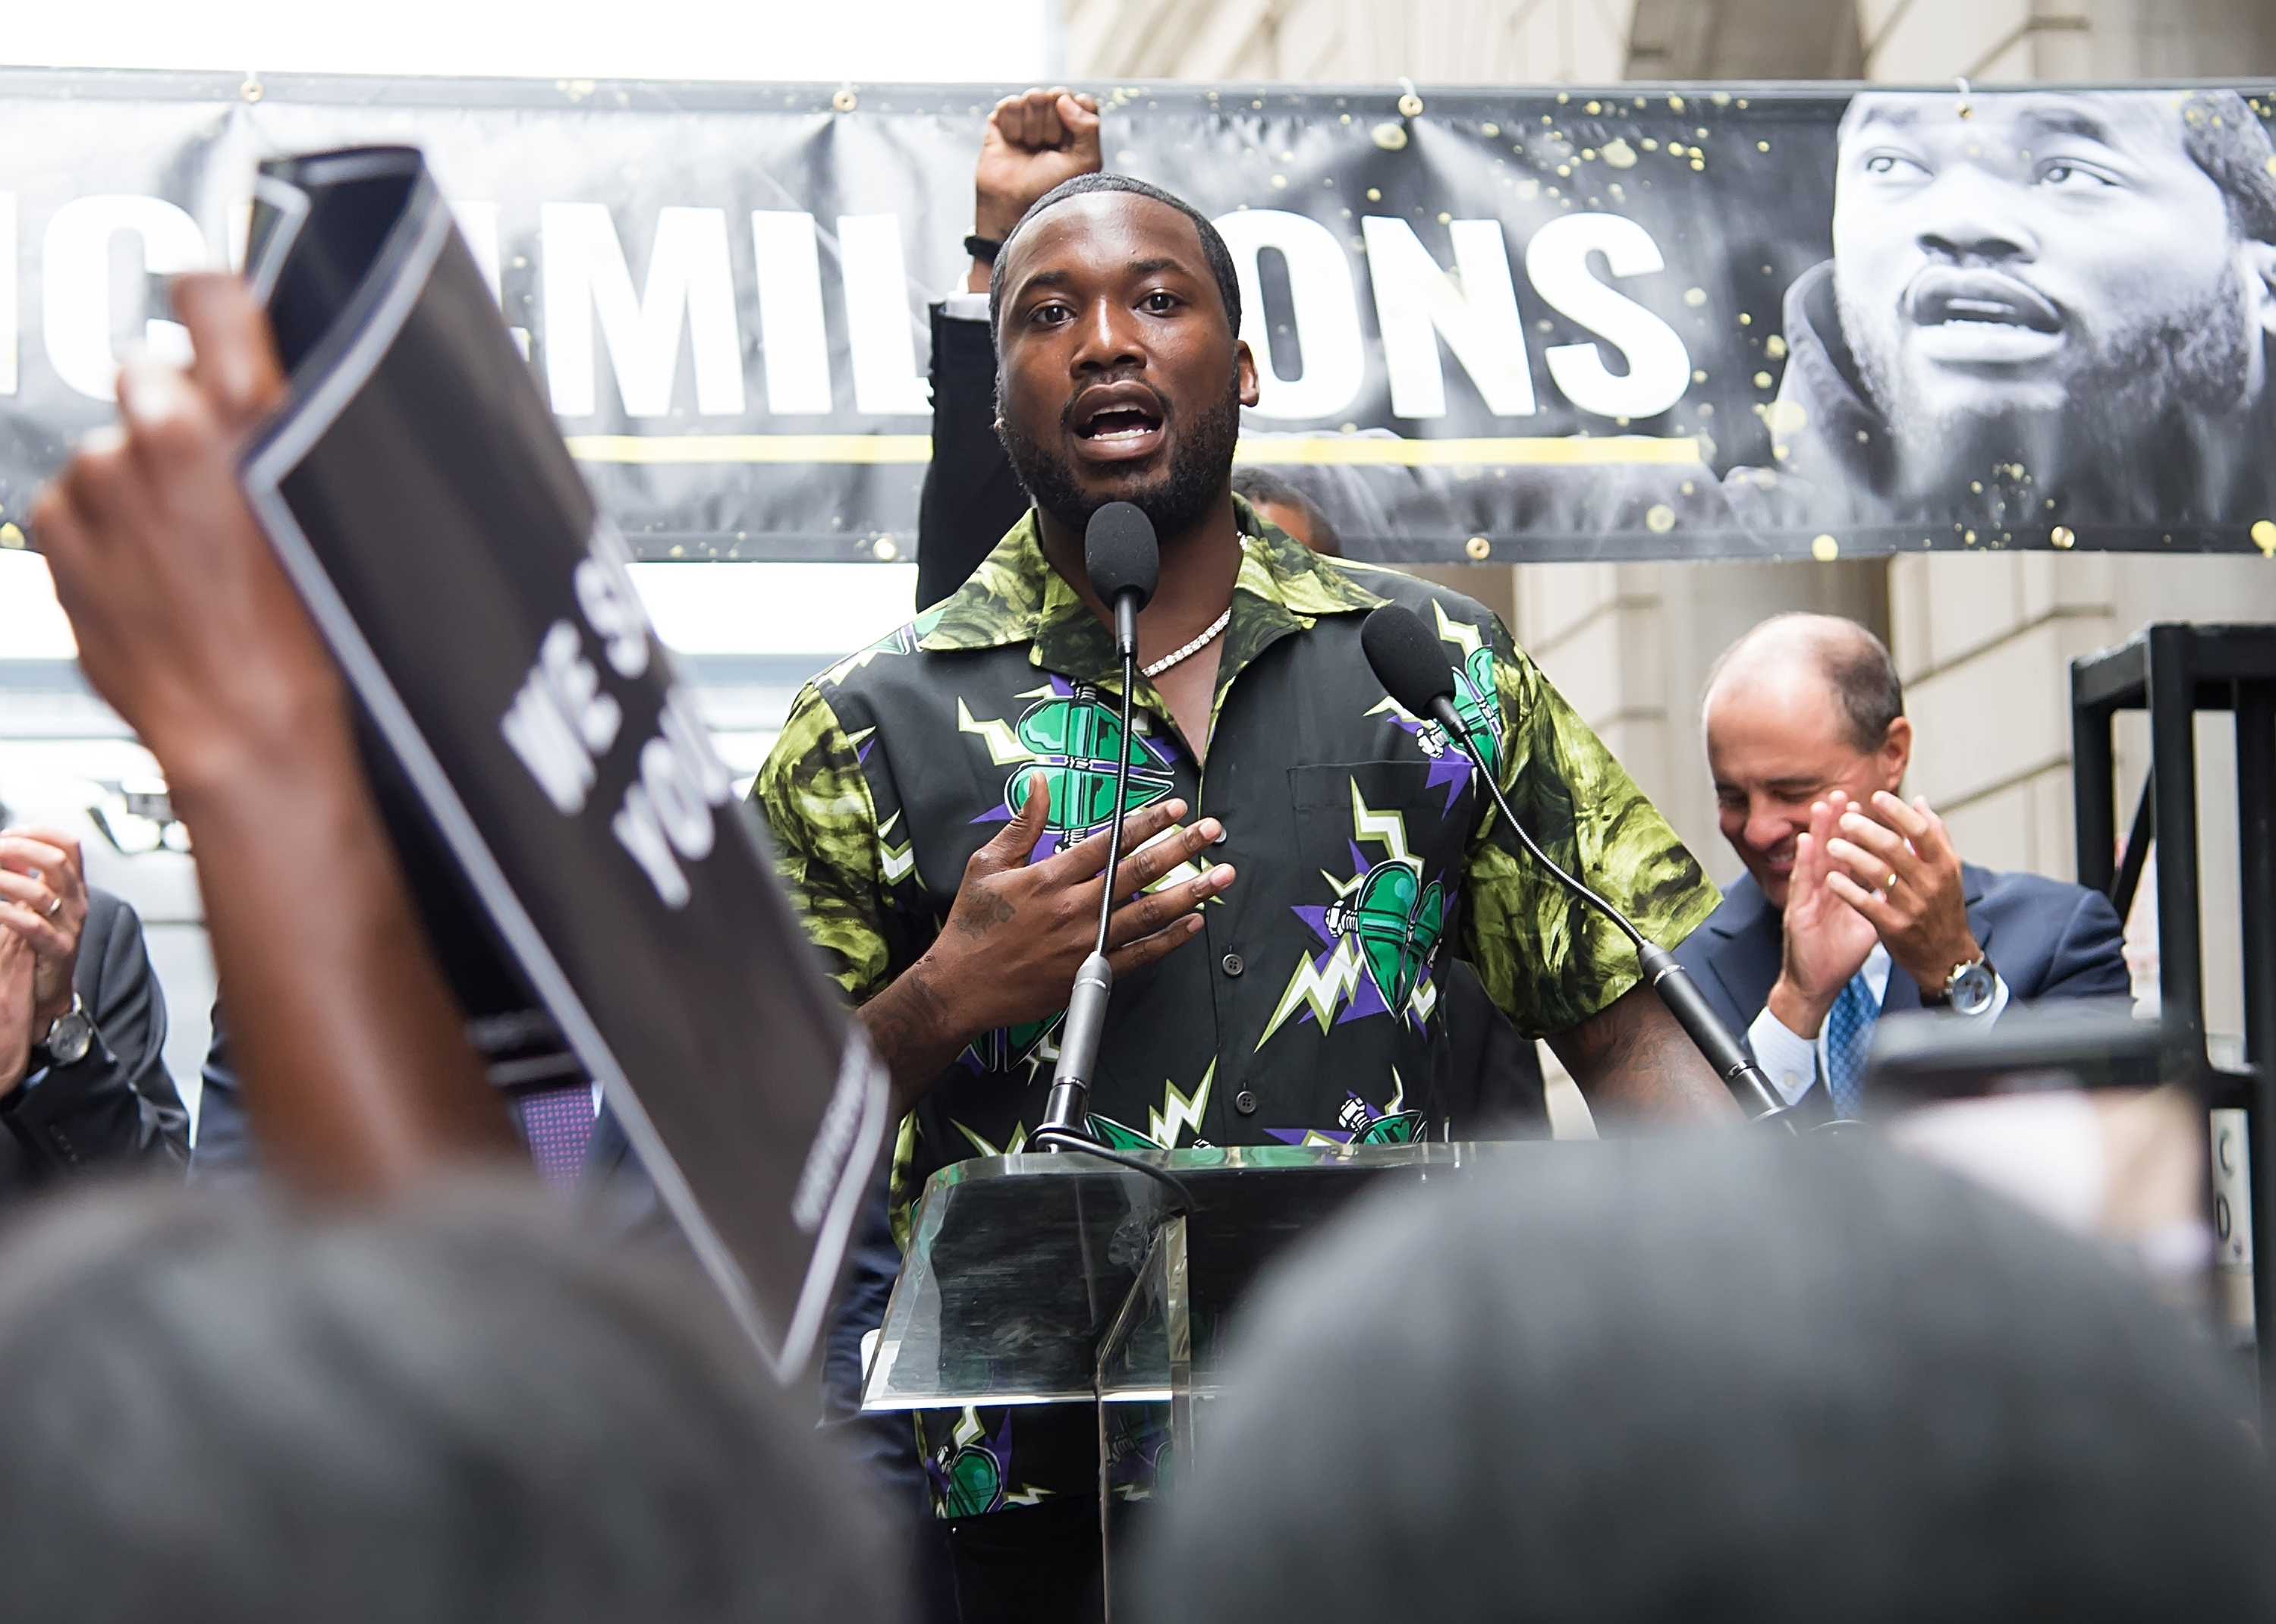 Meek Mill's decade-long probation showed how broken America's justice system is